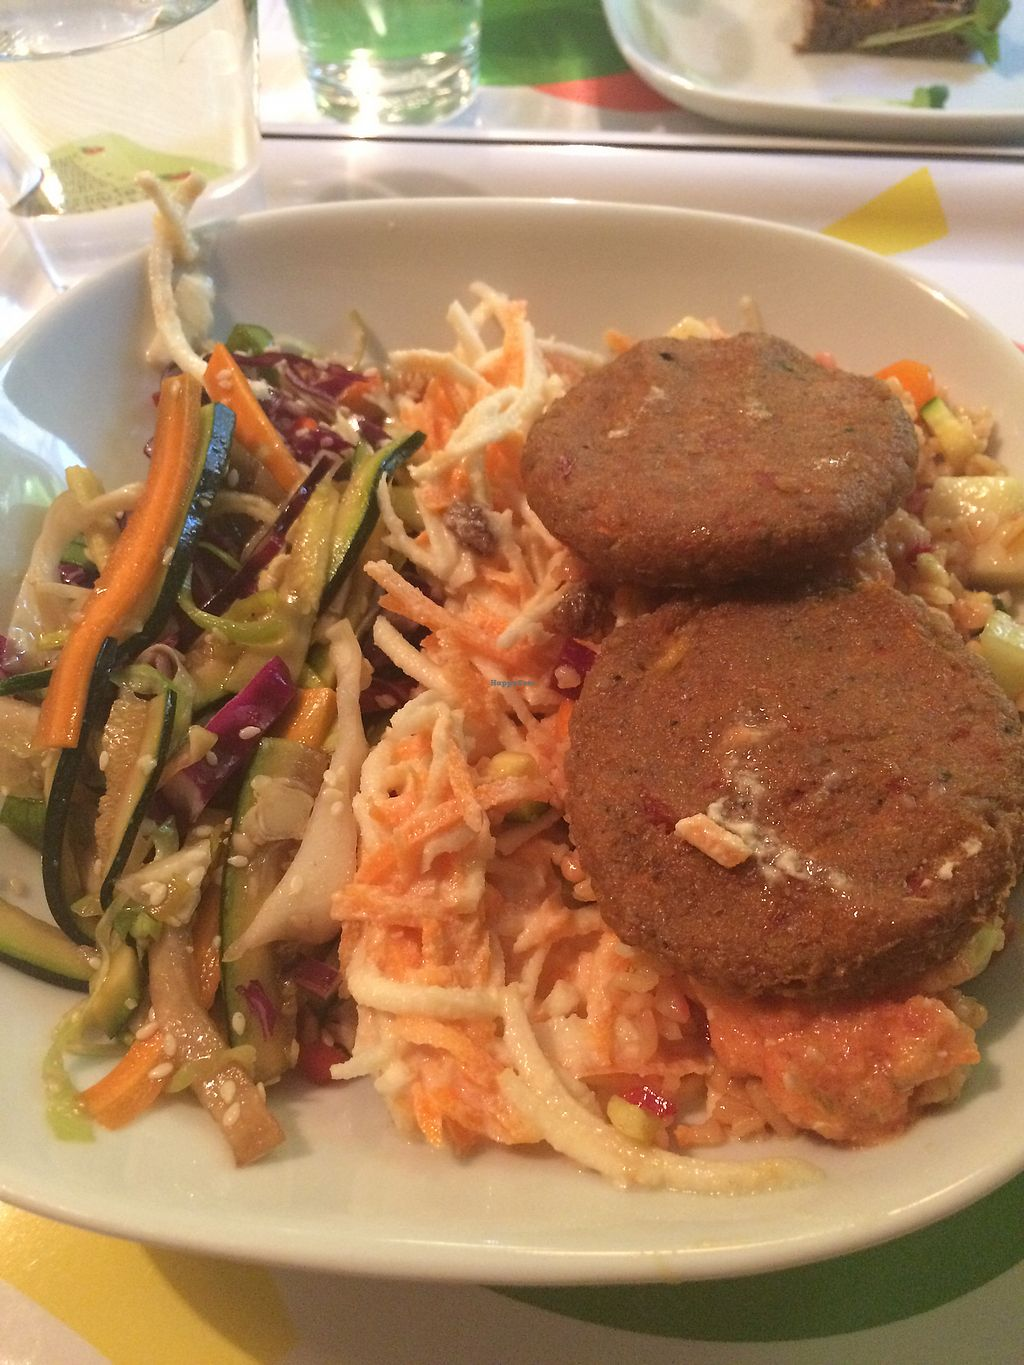 """Photo of Shanti  by <a href=""""/members/profile/JMTurner"""">JMTurner</a> <br/>Large salad with veggie patties  <br/> July 16, 2017  - <a href='/contact/abuse/image/64980/280963'>Report</a>"""